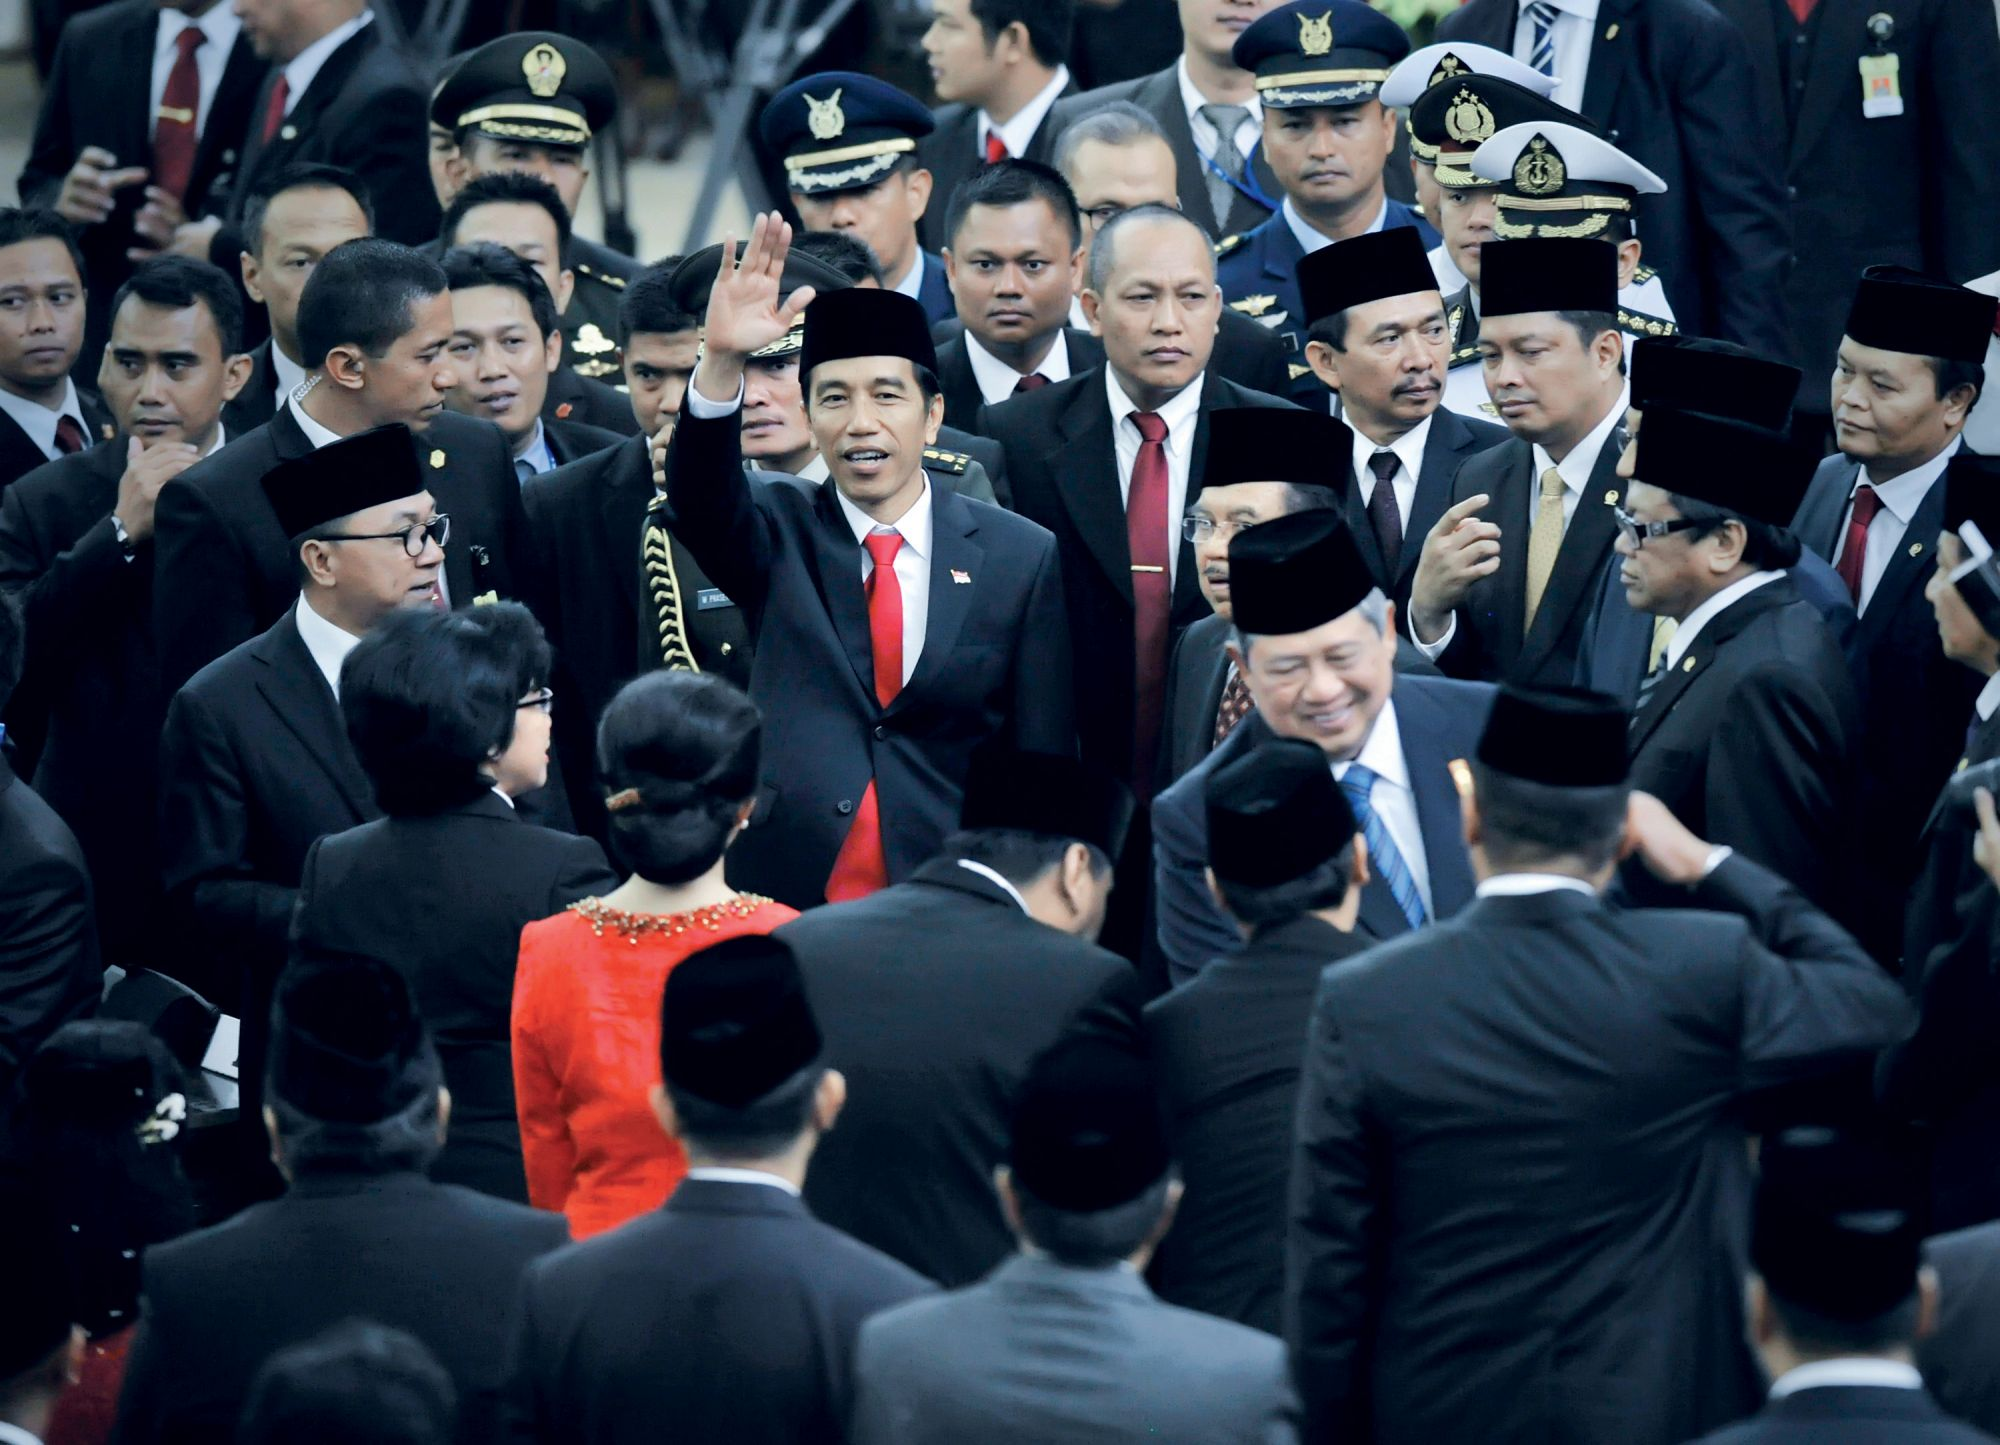 Will Indonesian President Joko Widodo Secure A Second Term?